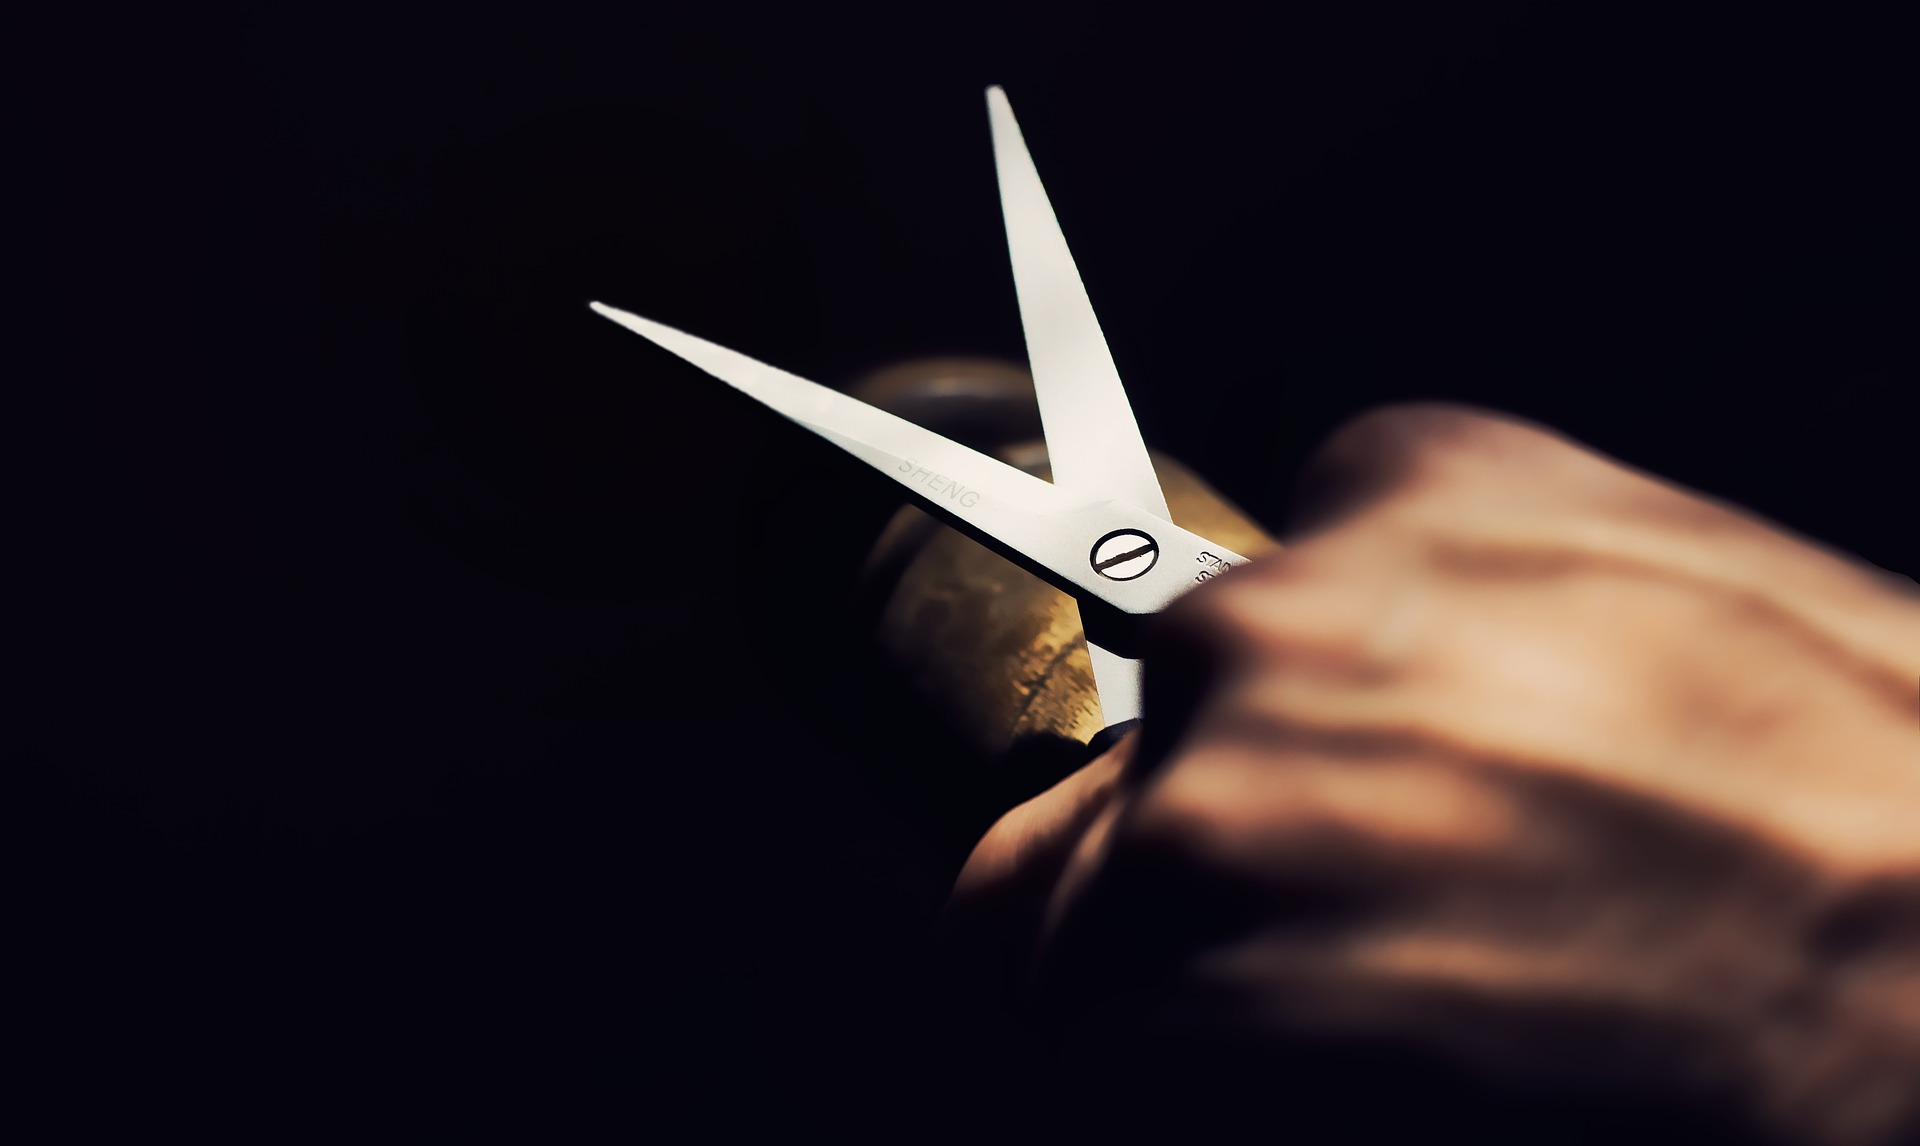 Business Advisory Archives Hanrick Curran Accountants And Strategists Schema Of Origami Mobile Crane 3 On 23 February 2017 The Fair Work Commission Announced Cuts To Sunday Penalty Rates Public Holidays Impacting Workers Employers Consumers Alike